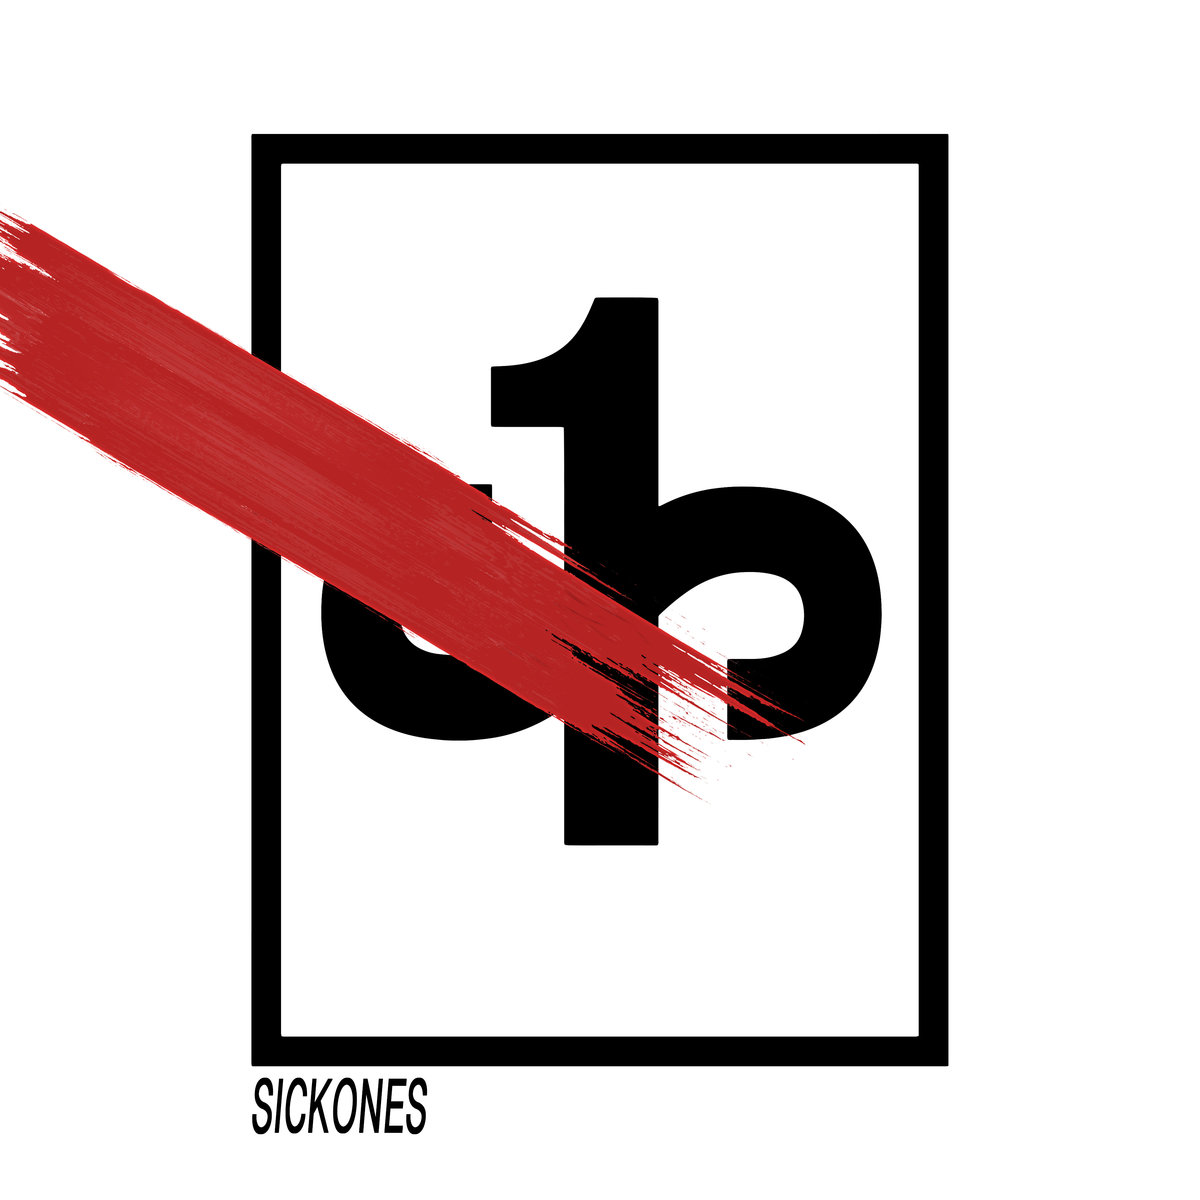 sickones the red line